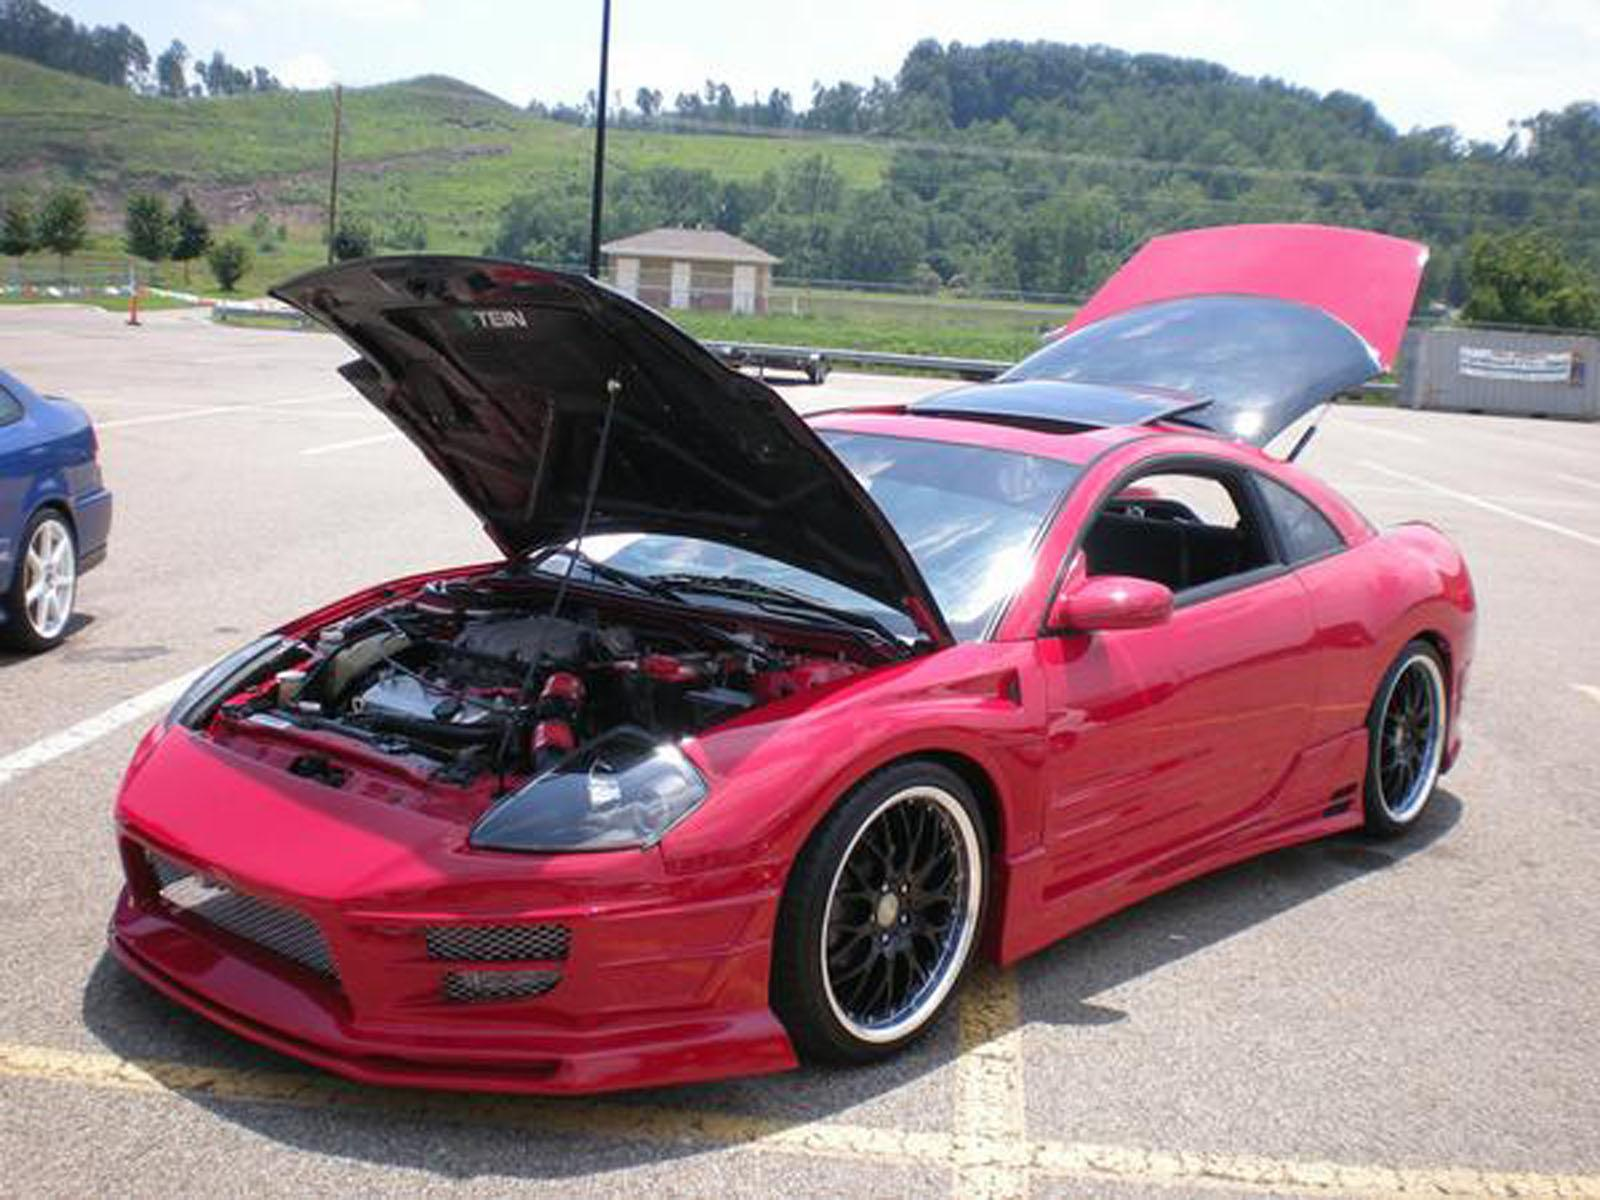 2000 mitsubishi eclipse information and photos zombiedrive